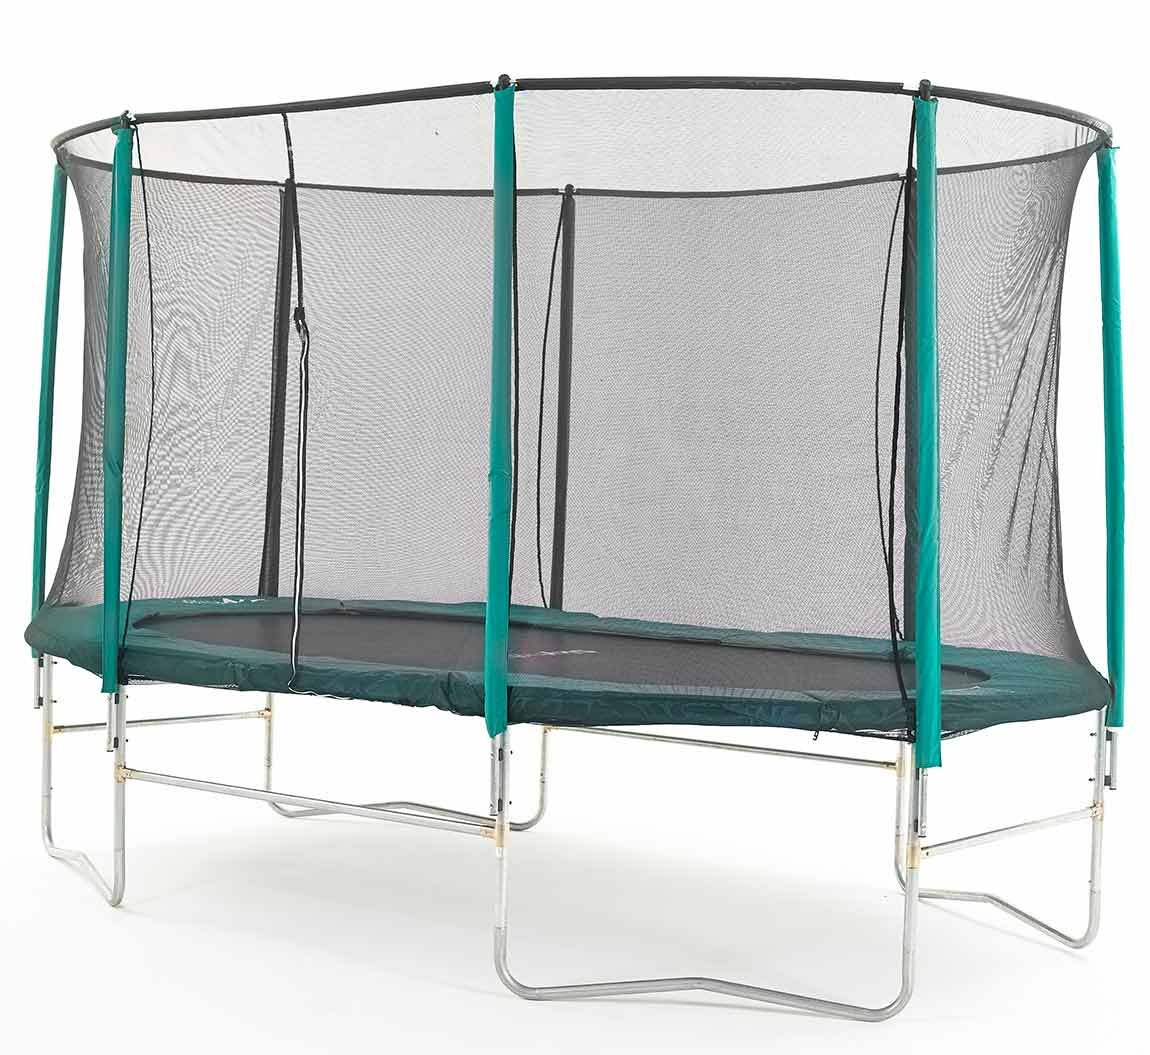 Skyhigh Oval Trampoline with Safety Enclosure